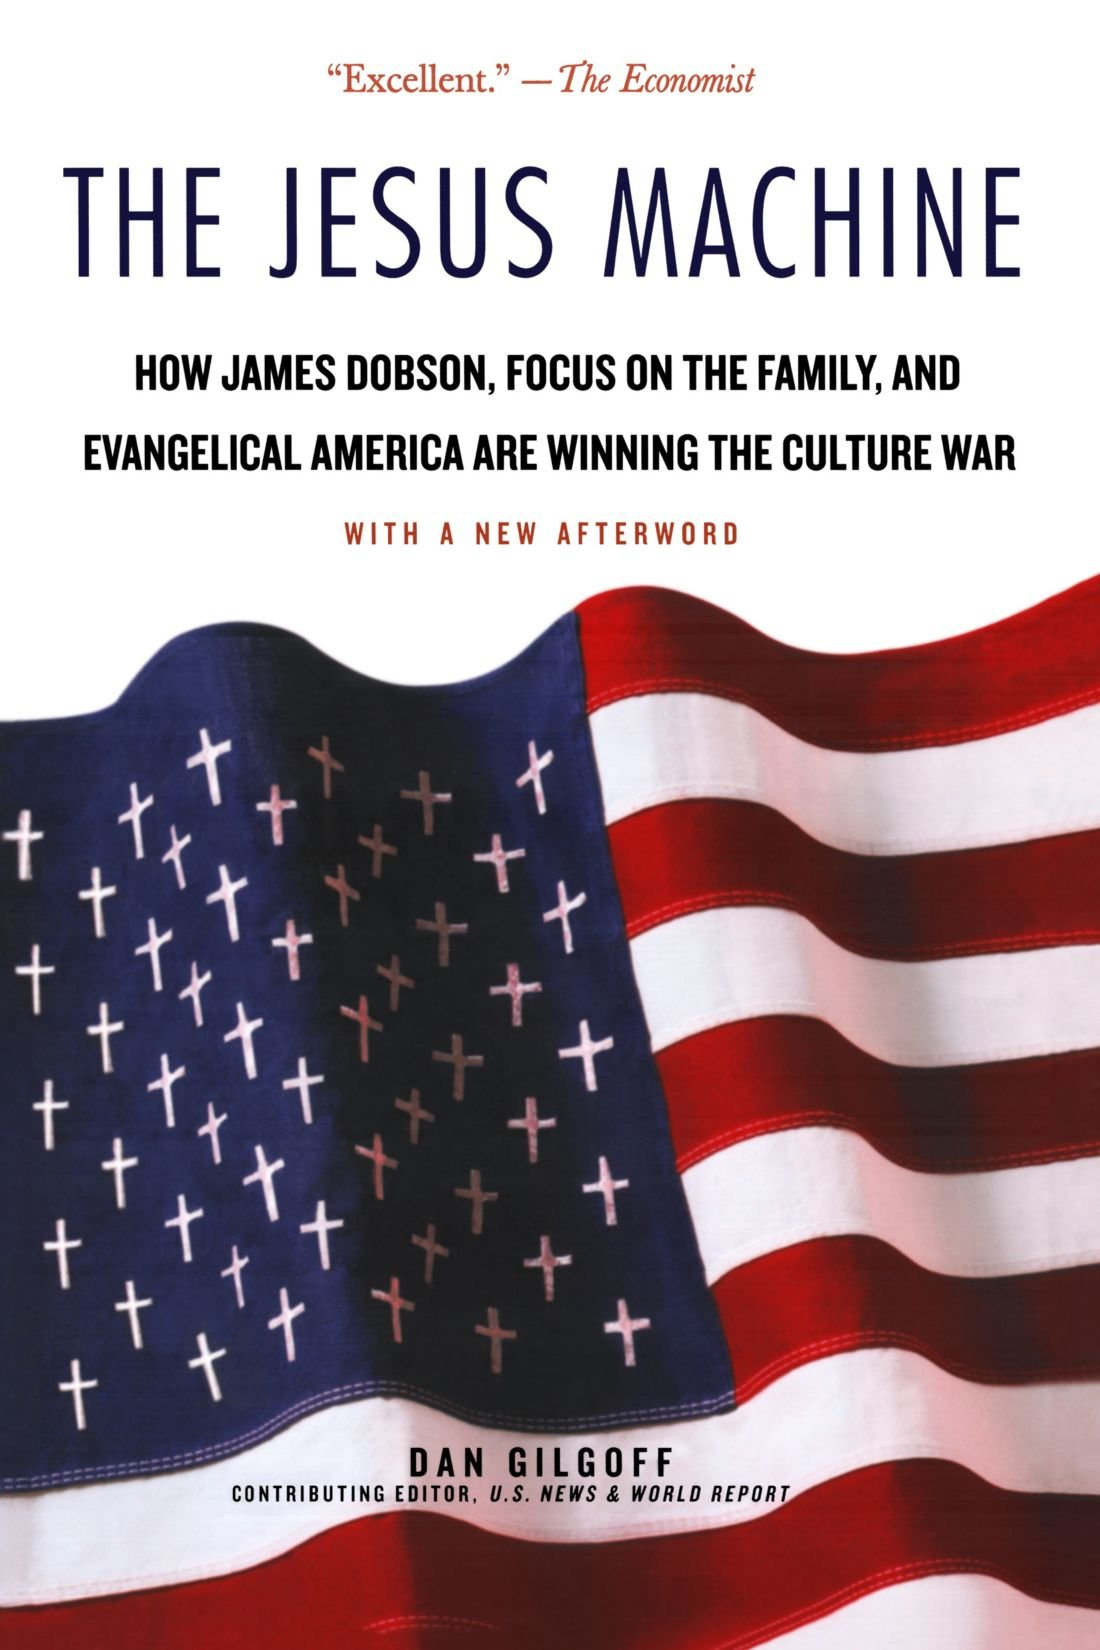 Night lights james dobson - The Jesus Machine How James Dobson Focus On The Family And Evangelical America Are Winning The Culture War Dan Gilgoff 9780312378448 Amazon Com Books